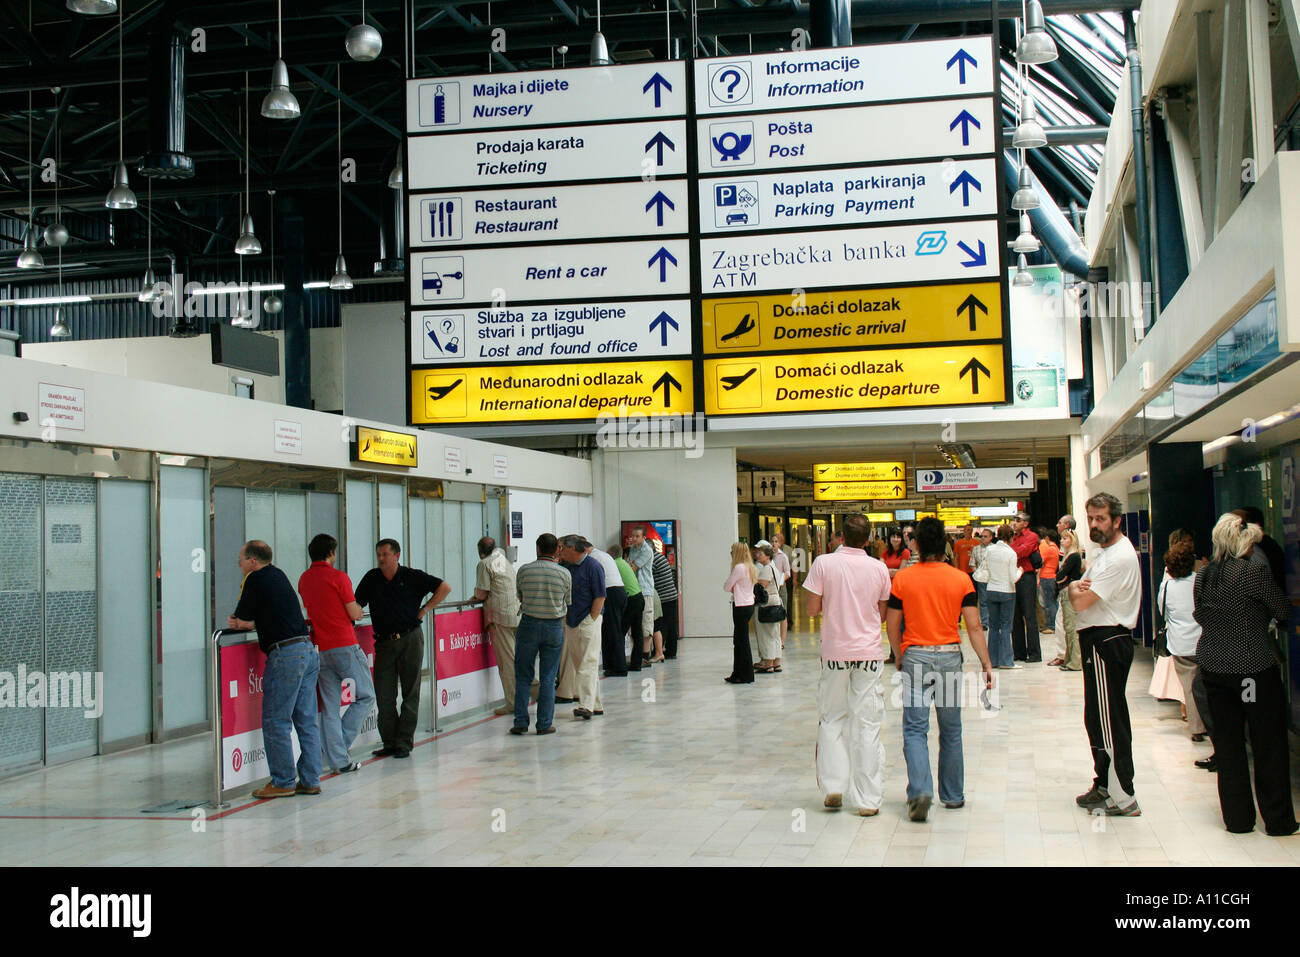 Arrivals At Zagreb Airport Stock Photo Alamy